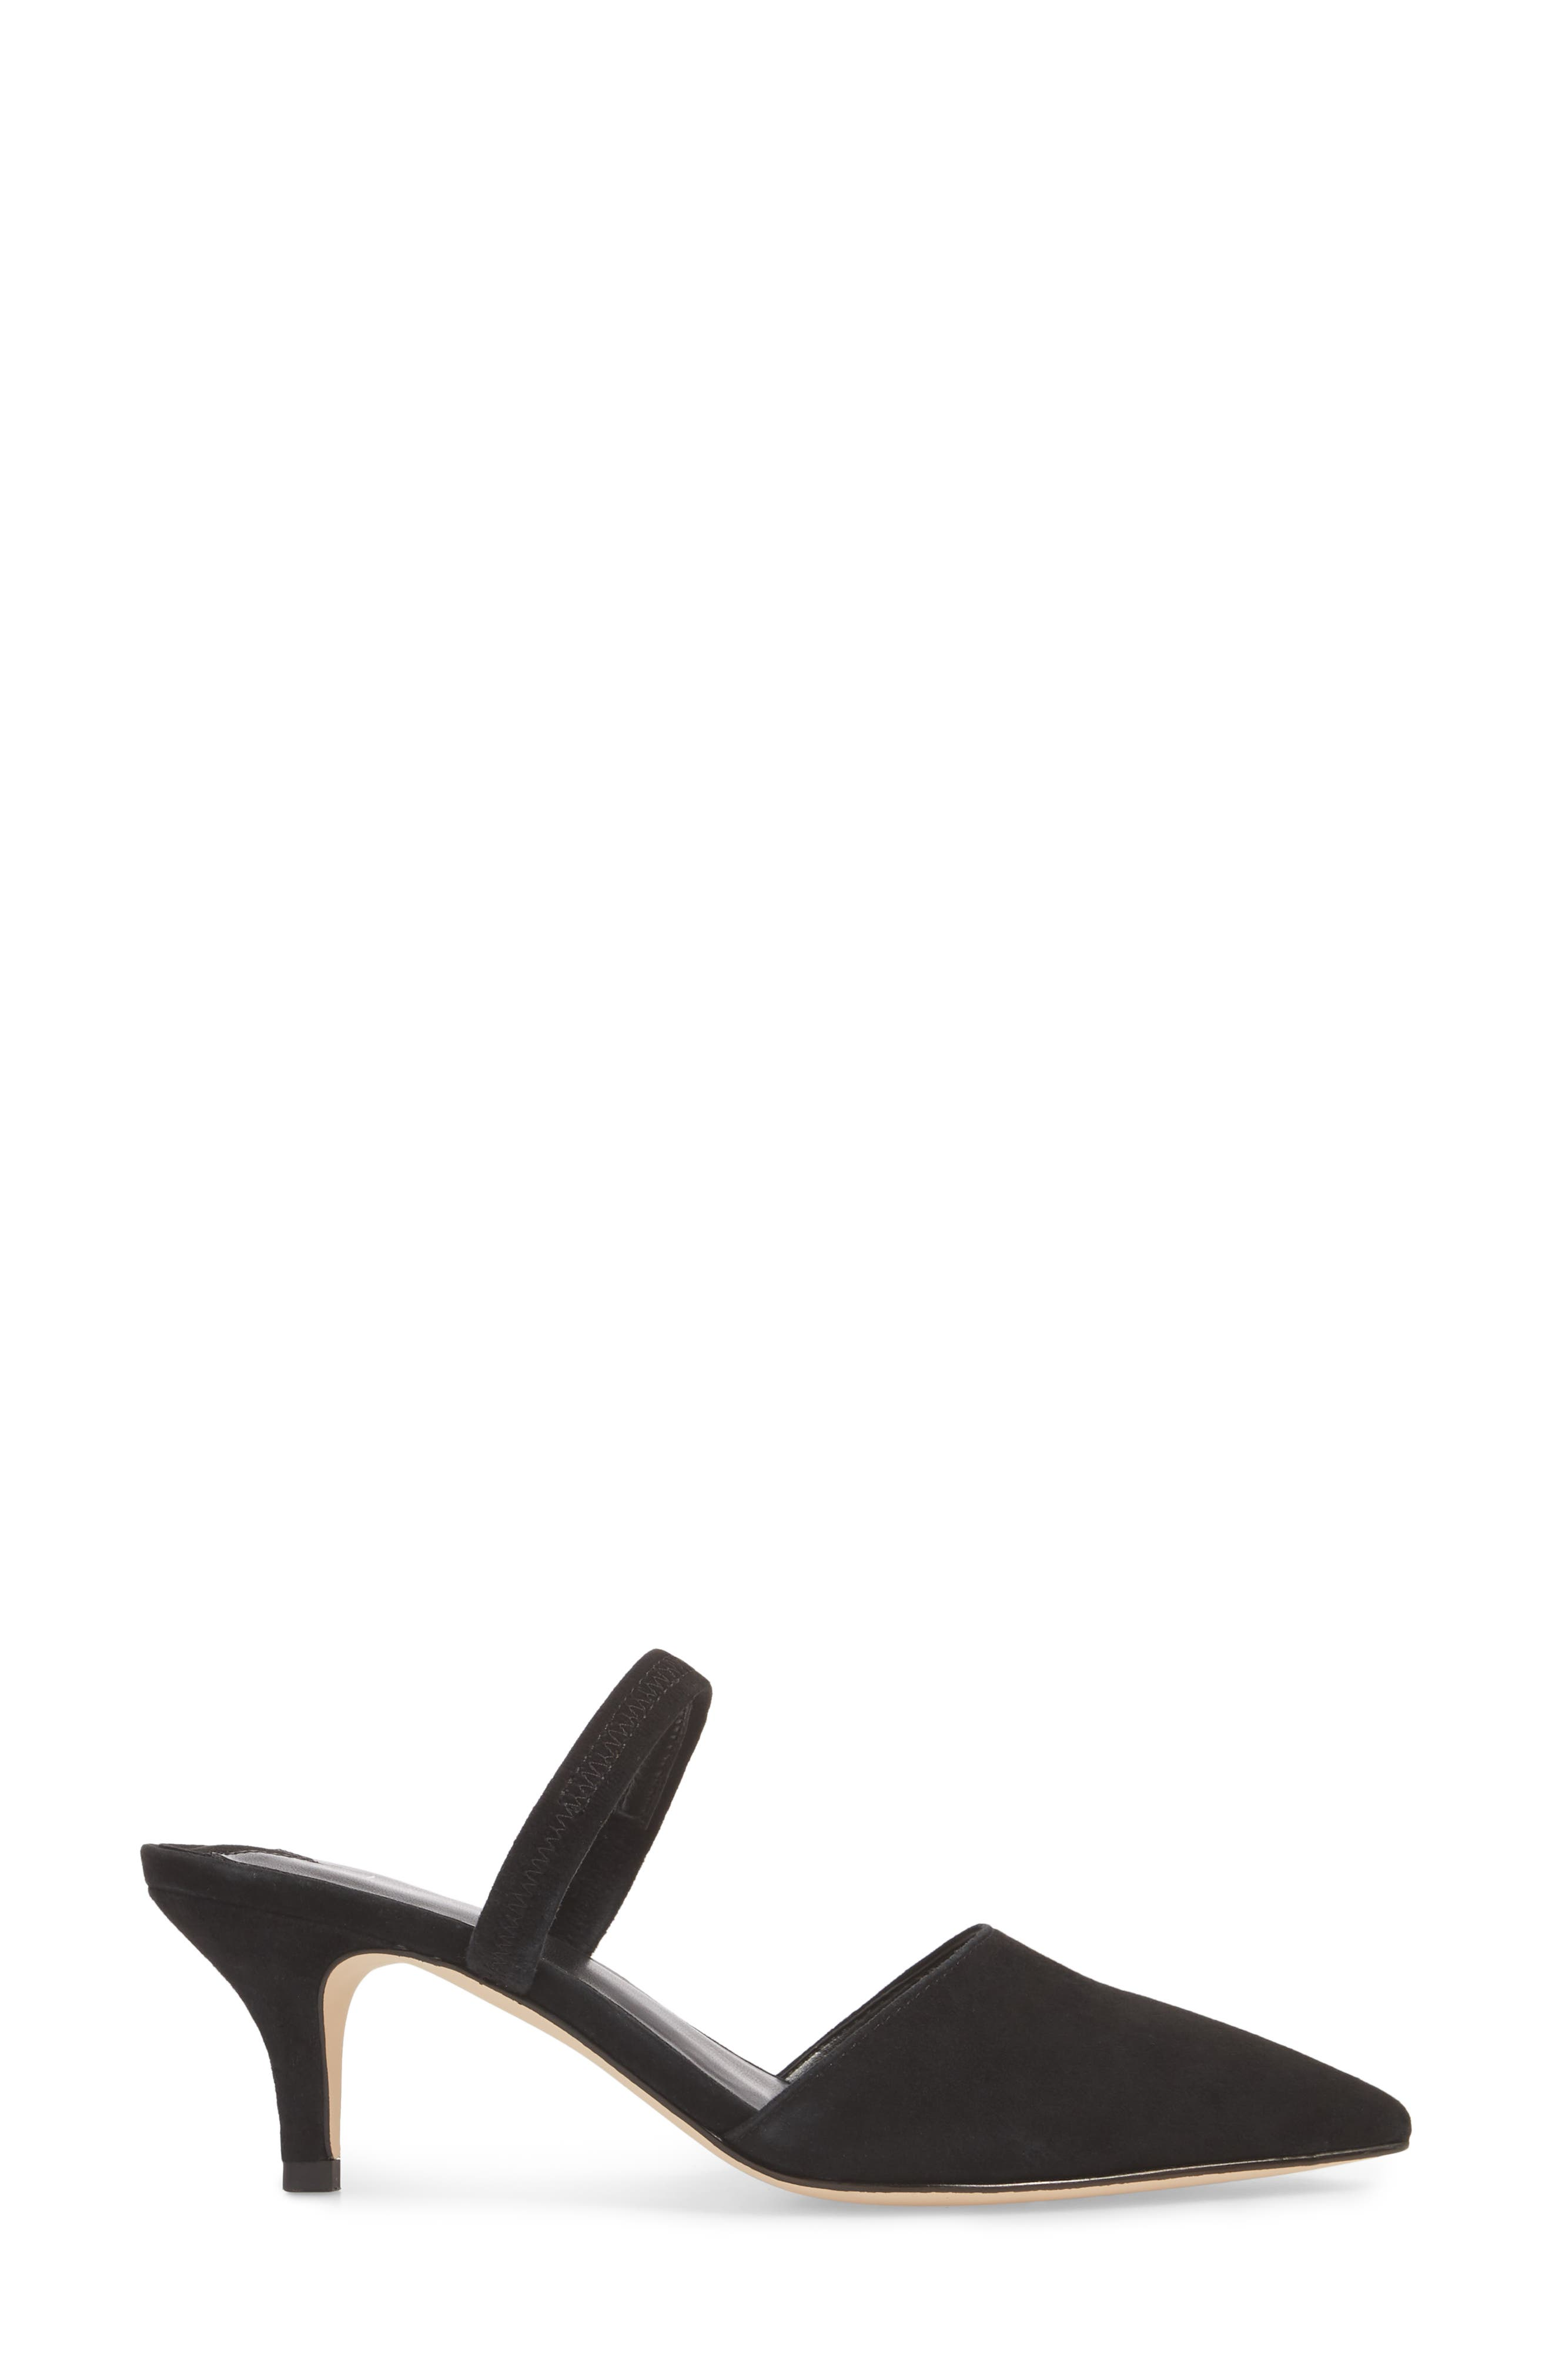 Nikki Convertible Pump,                             Alternate thumbnail 3, color,                             BLACK SUEDE